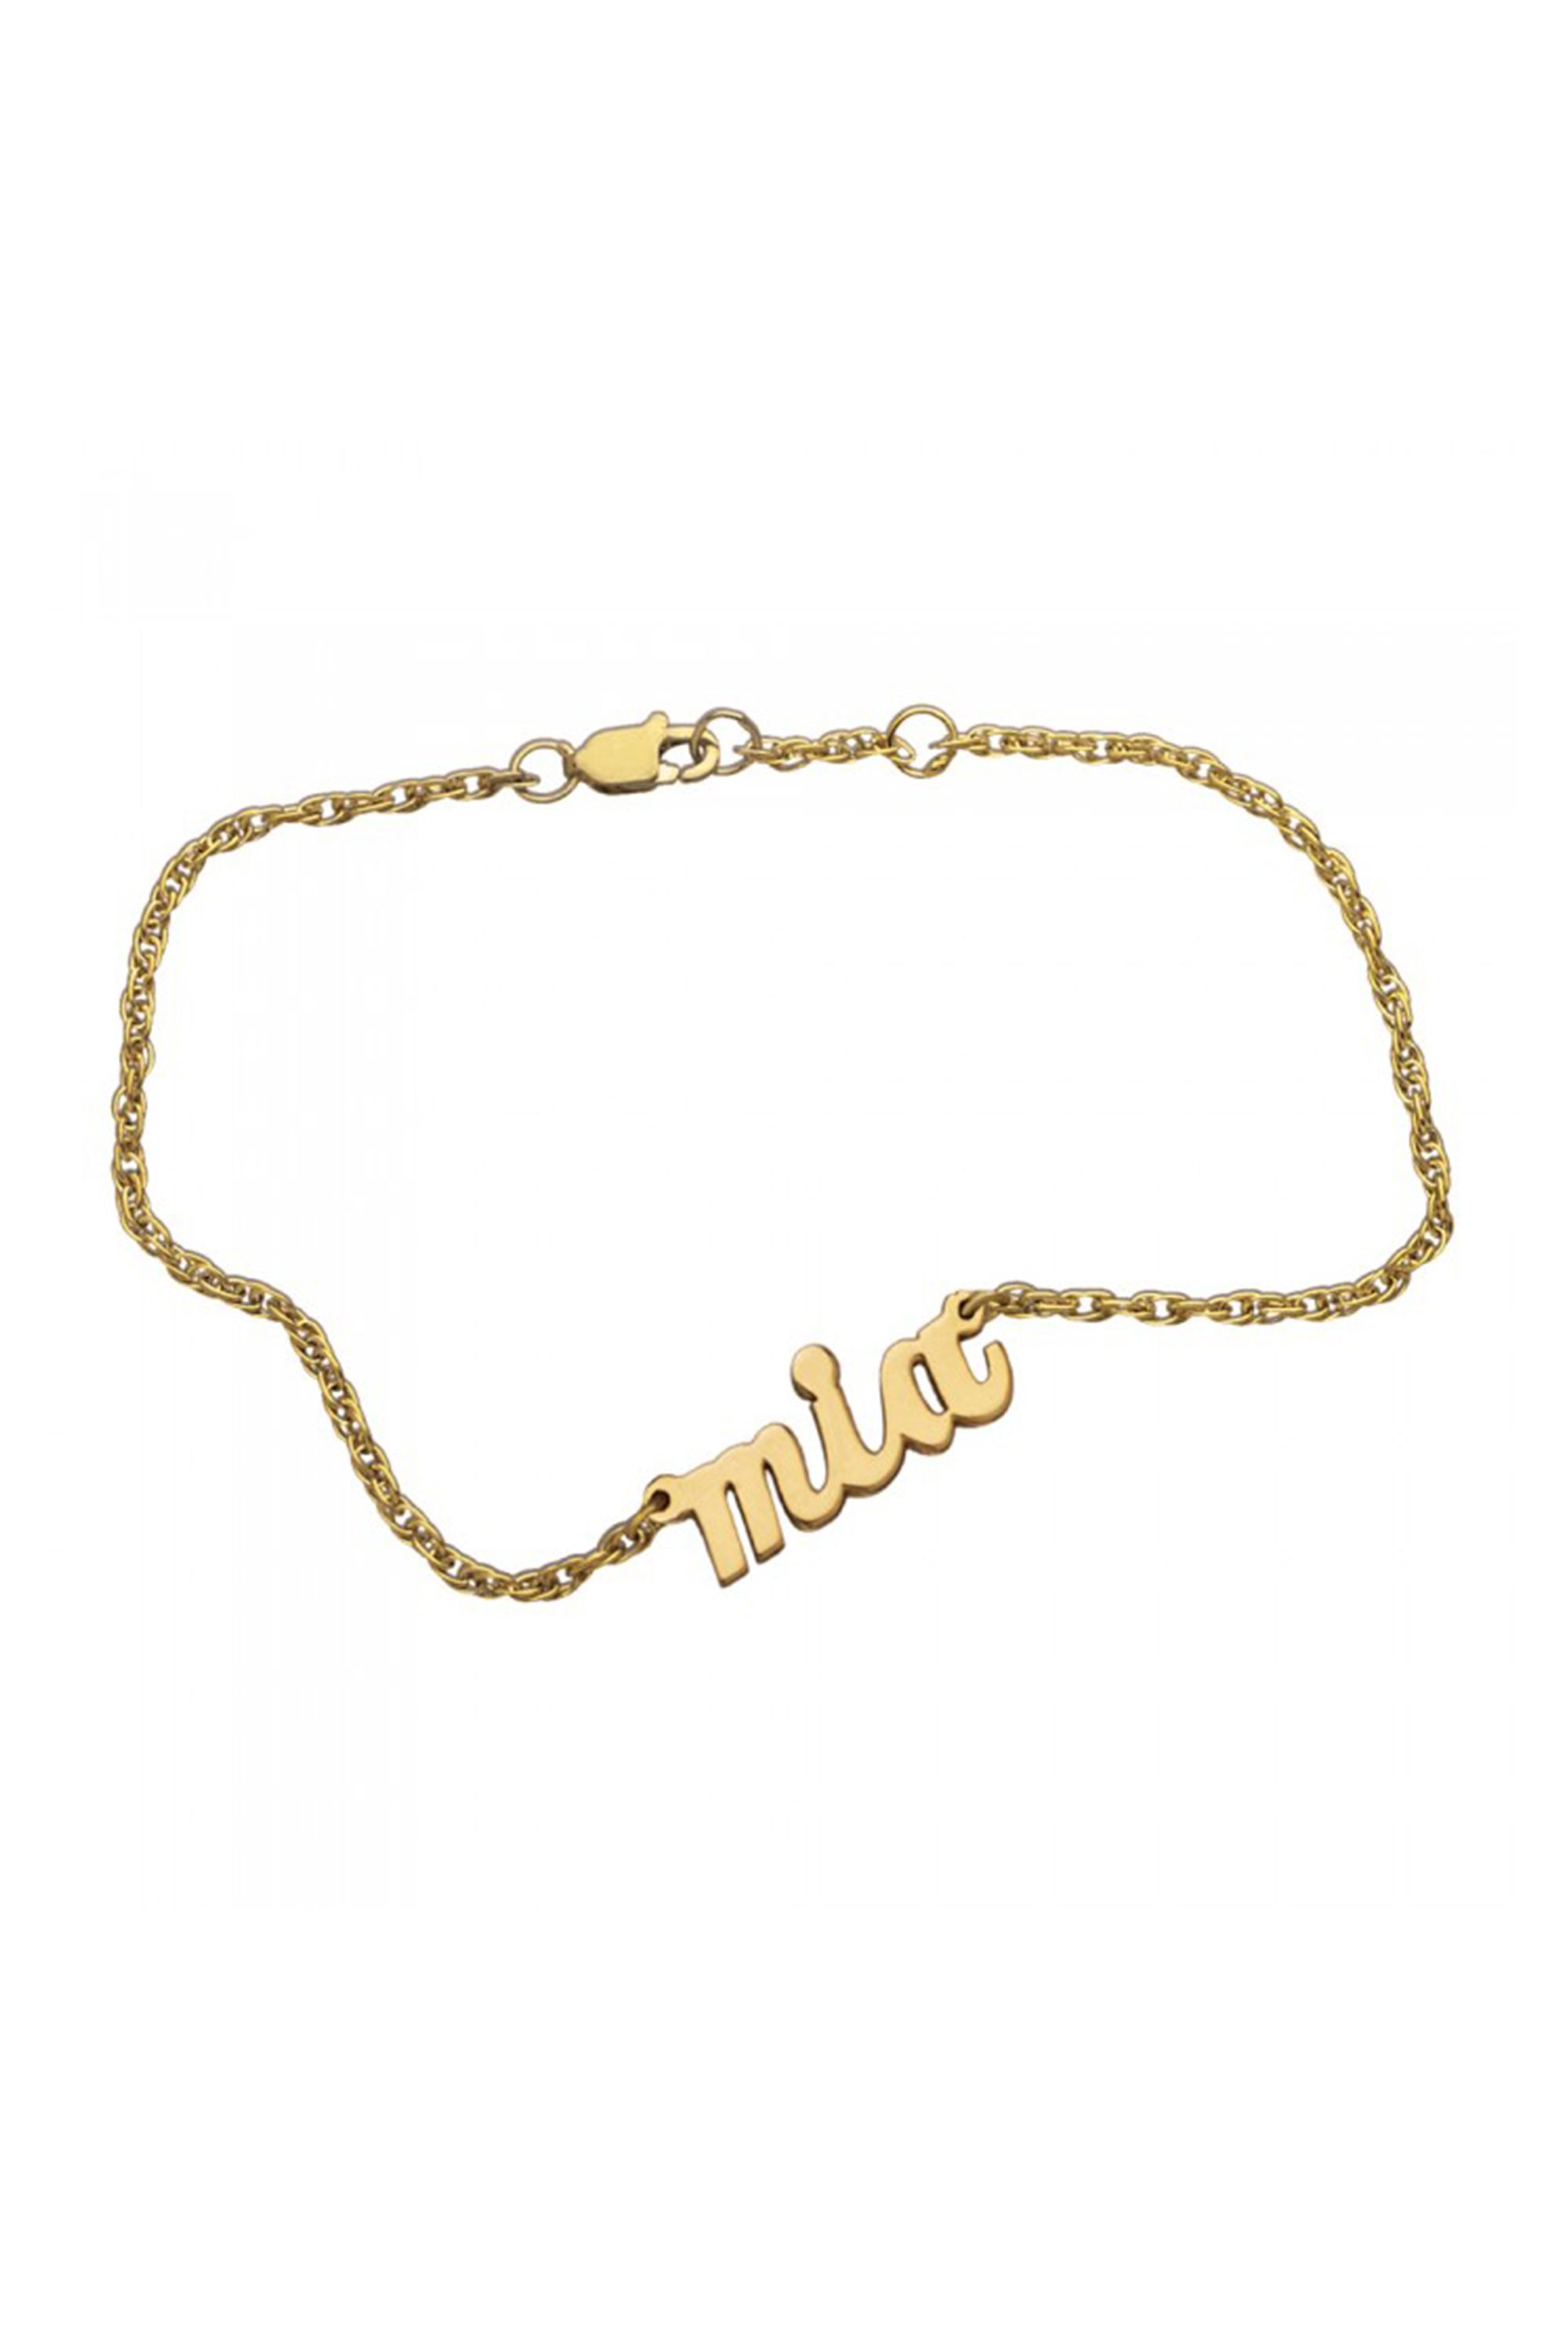 effy gold white diamond tcw anklet bracelet jewelry links